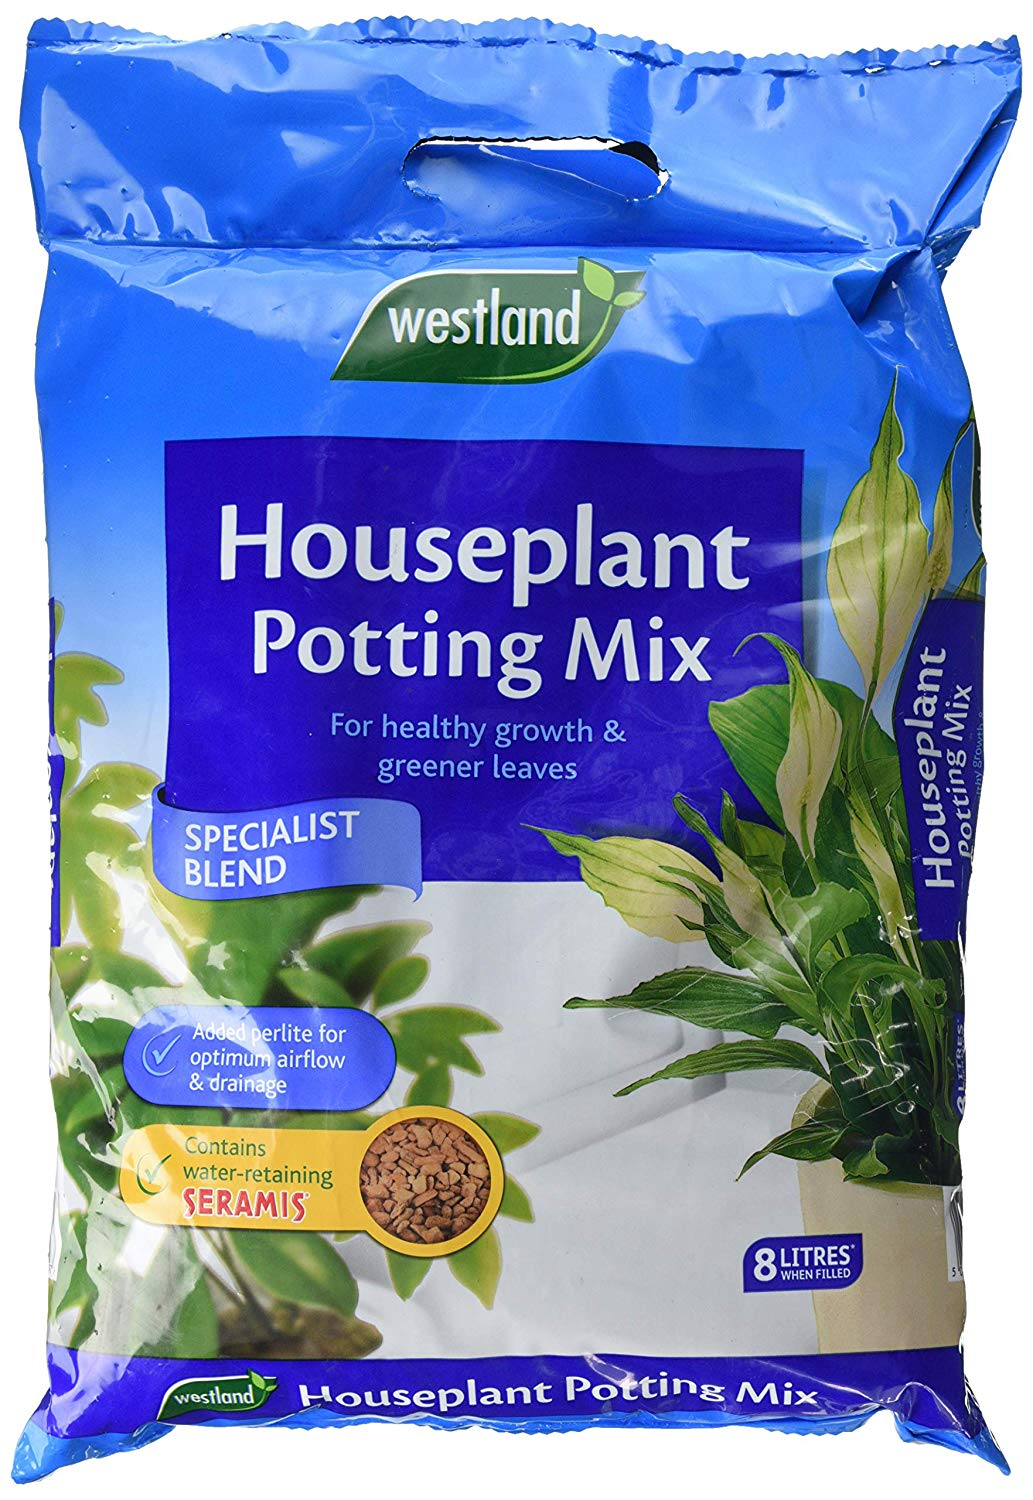 Westland Houseplant Potting Compost Mix and Enriched with Seramis, 8 L for £3.19 at Amazon